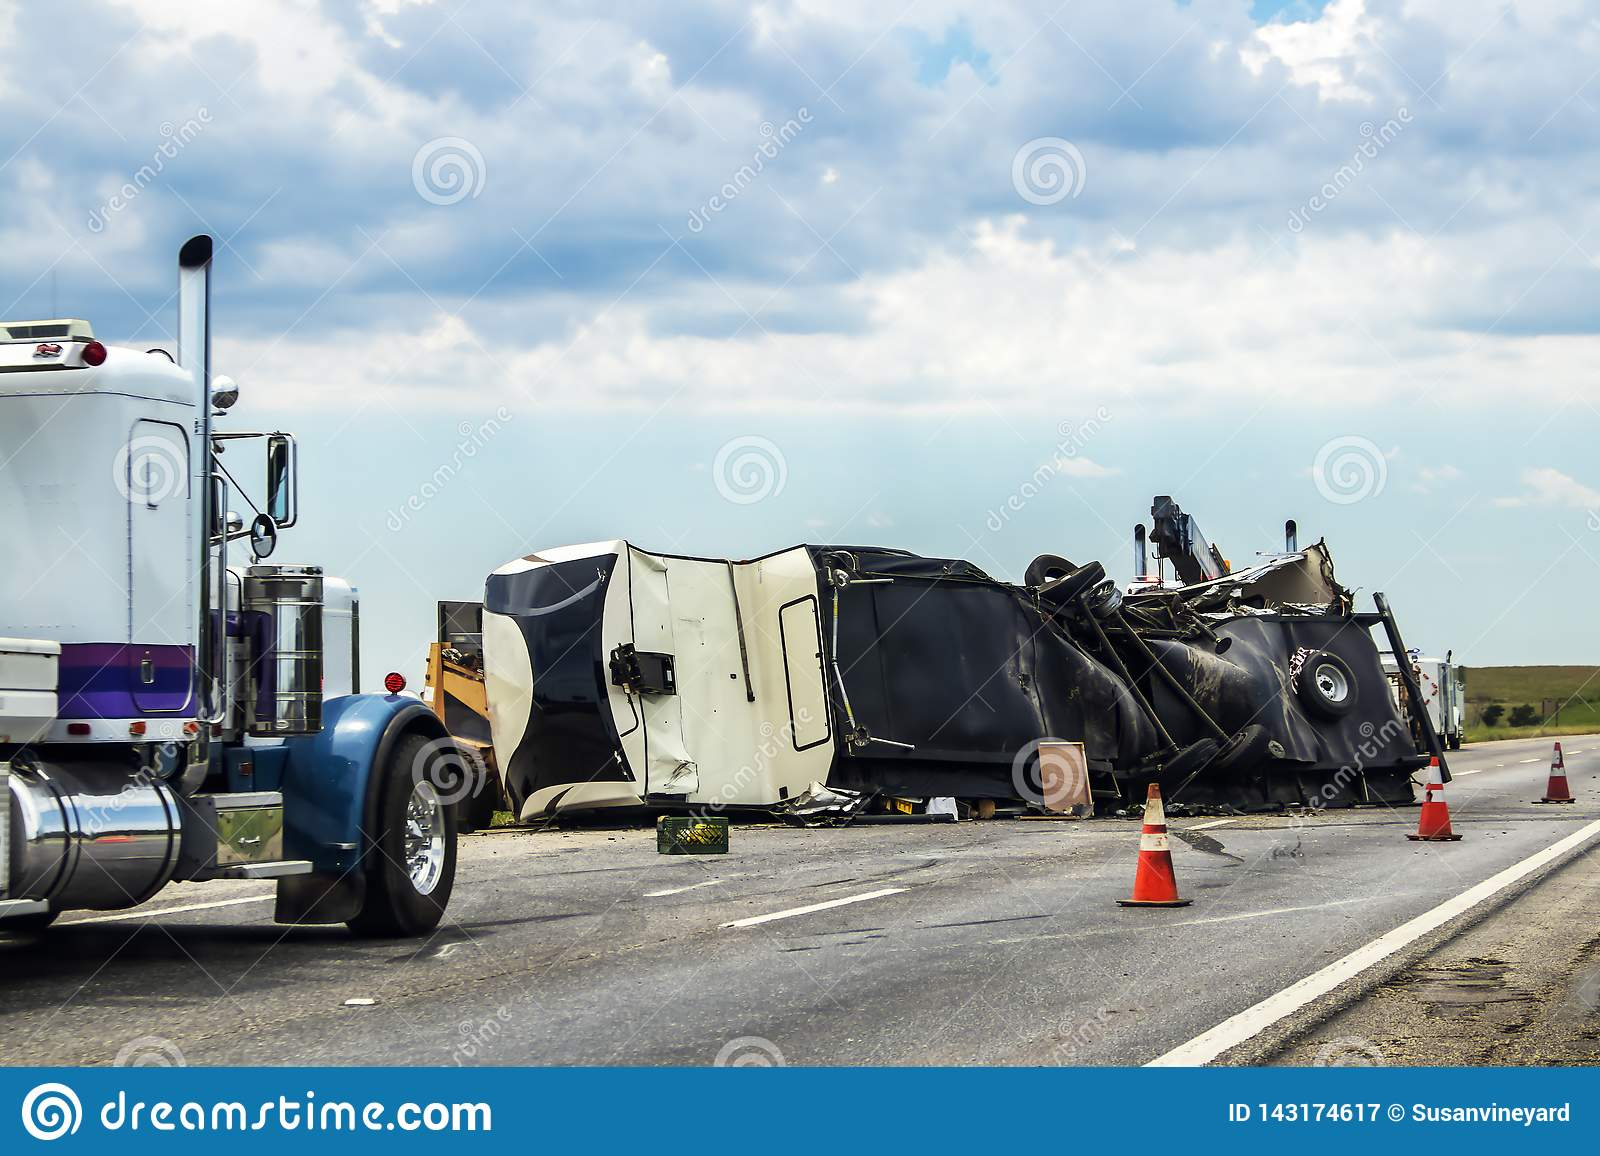 Fifth wheel RV overturned on highway with wench truck trying to get it off the road and two semis parked nearby and traffic cones